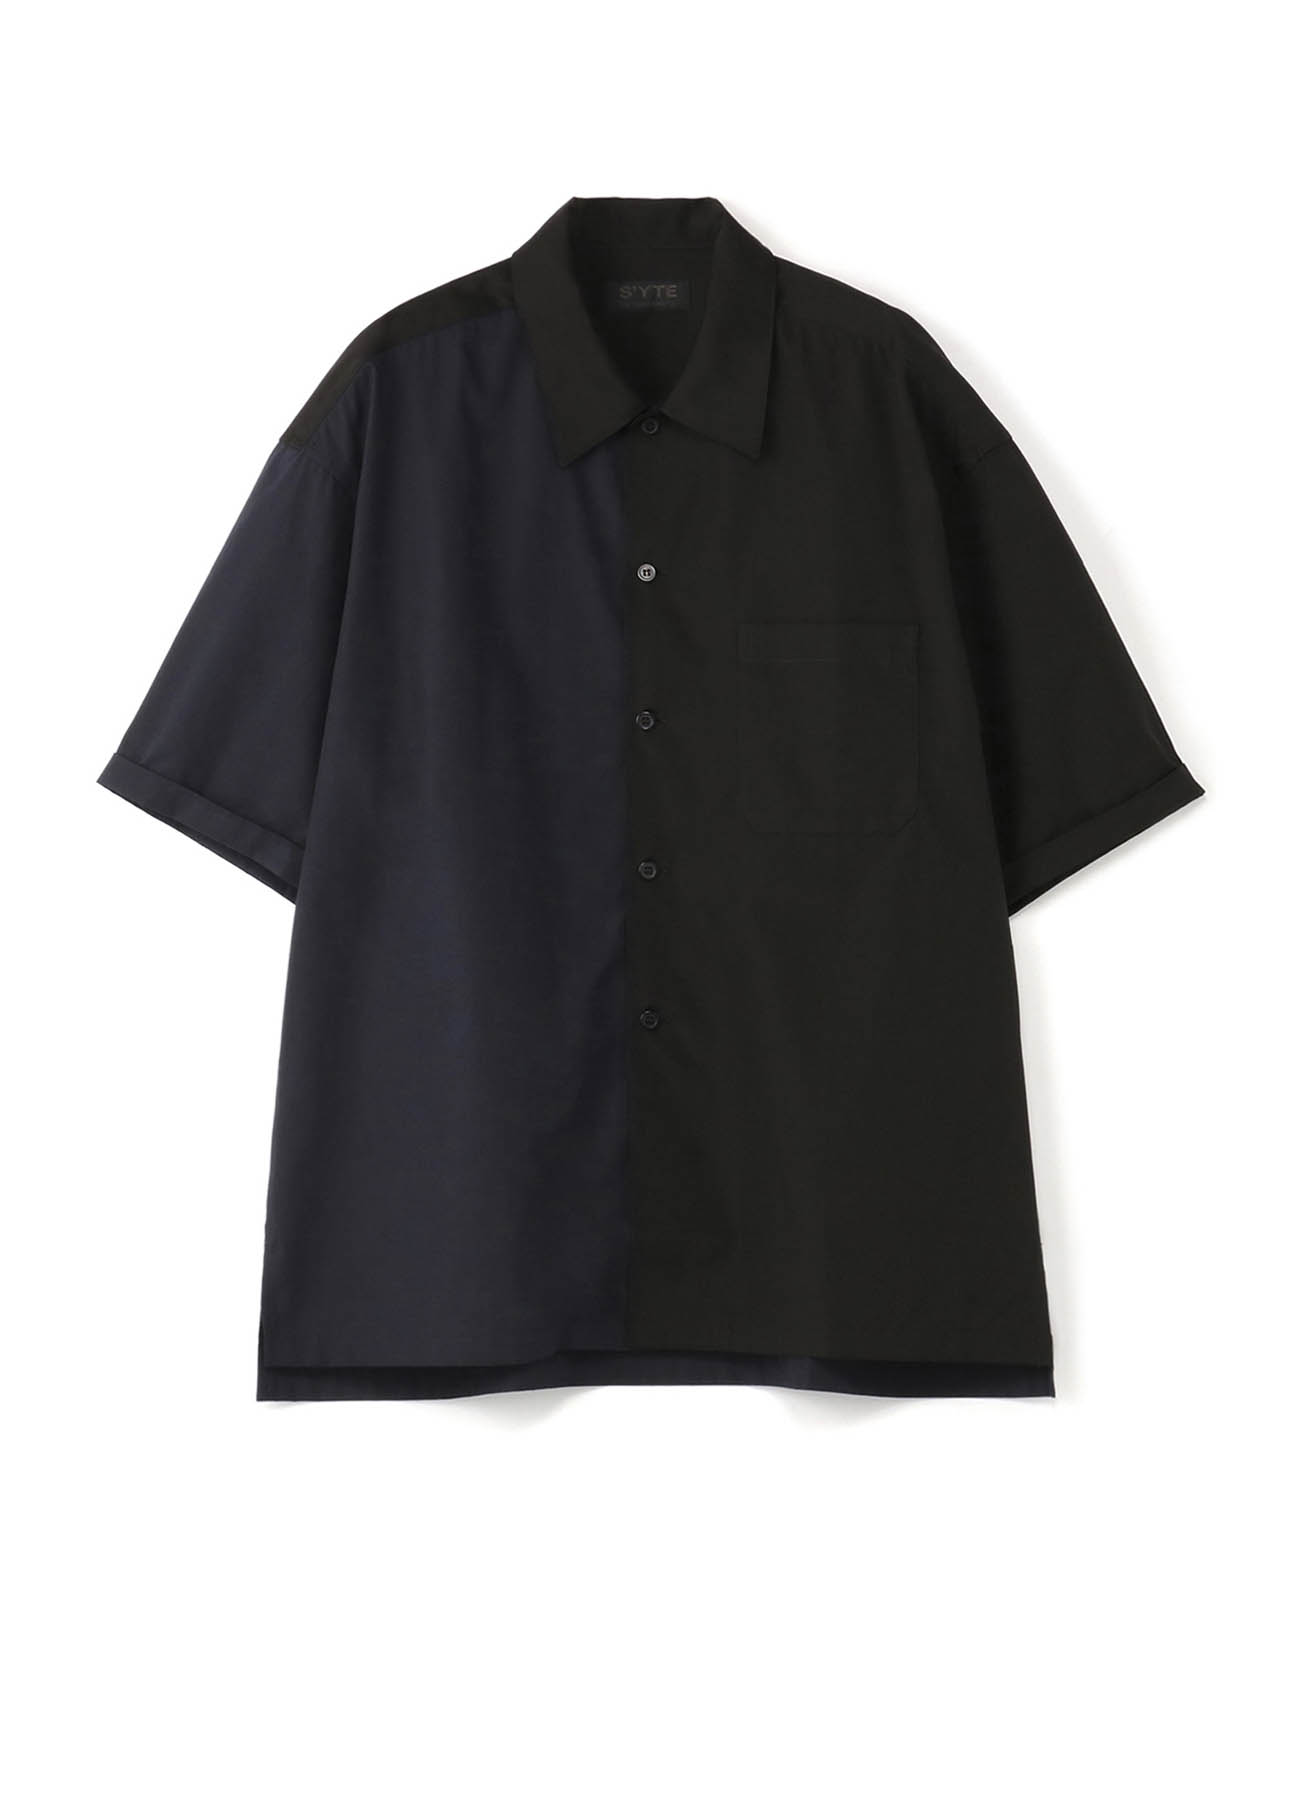 Cotton Broad Panel ByColor Big Short Sleeve Shirt